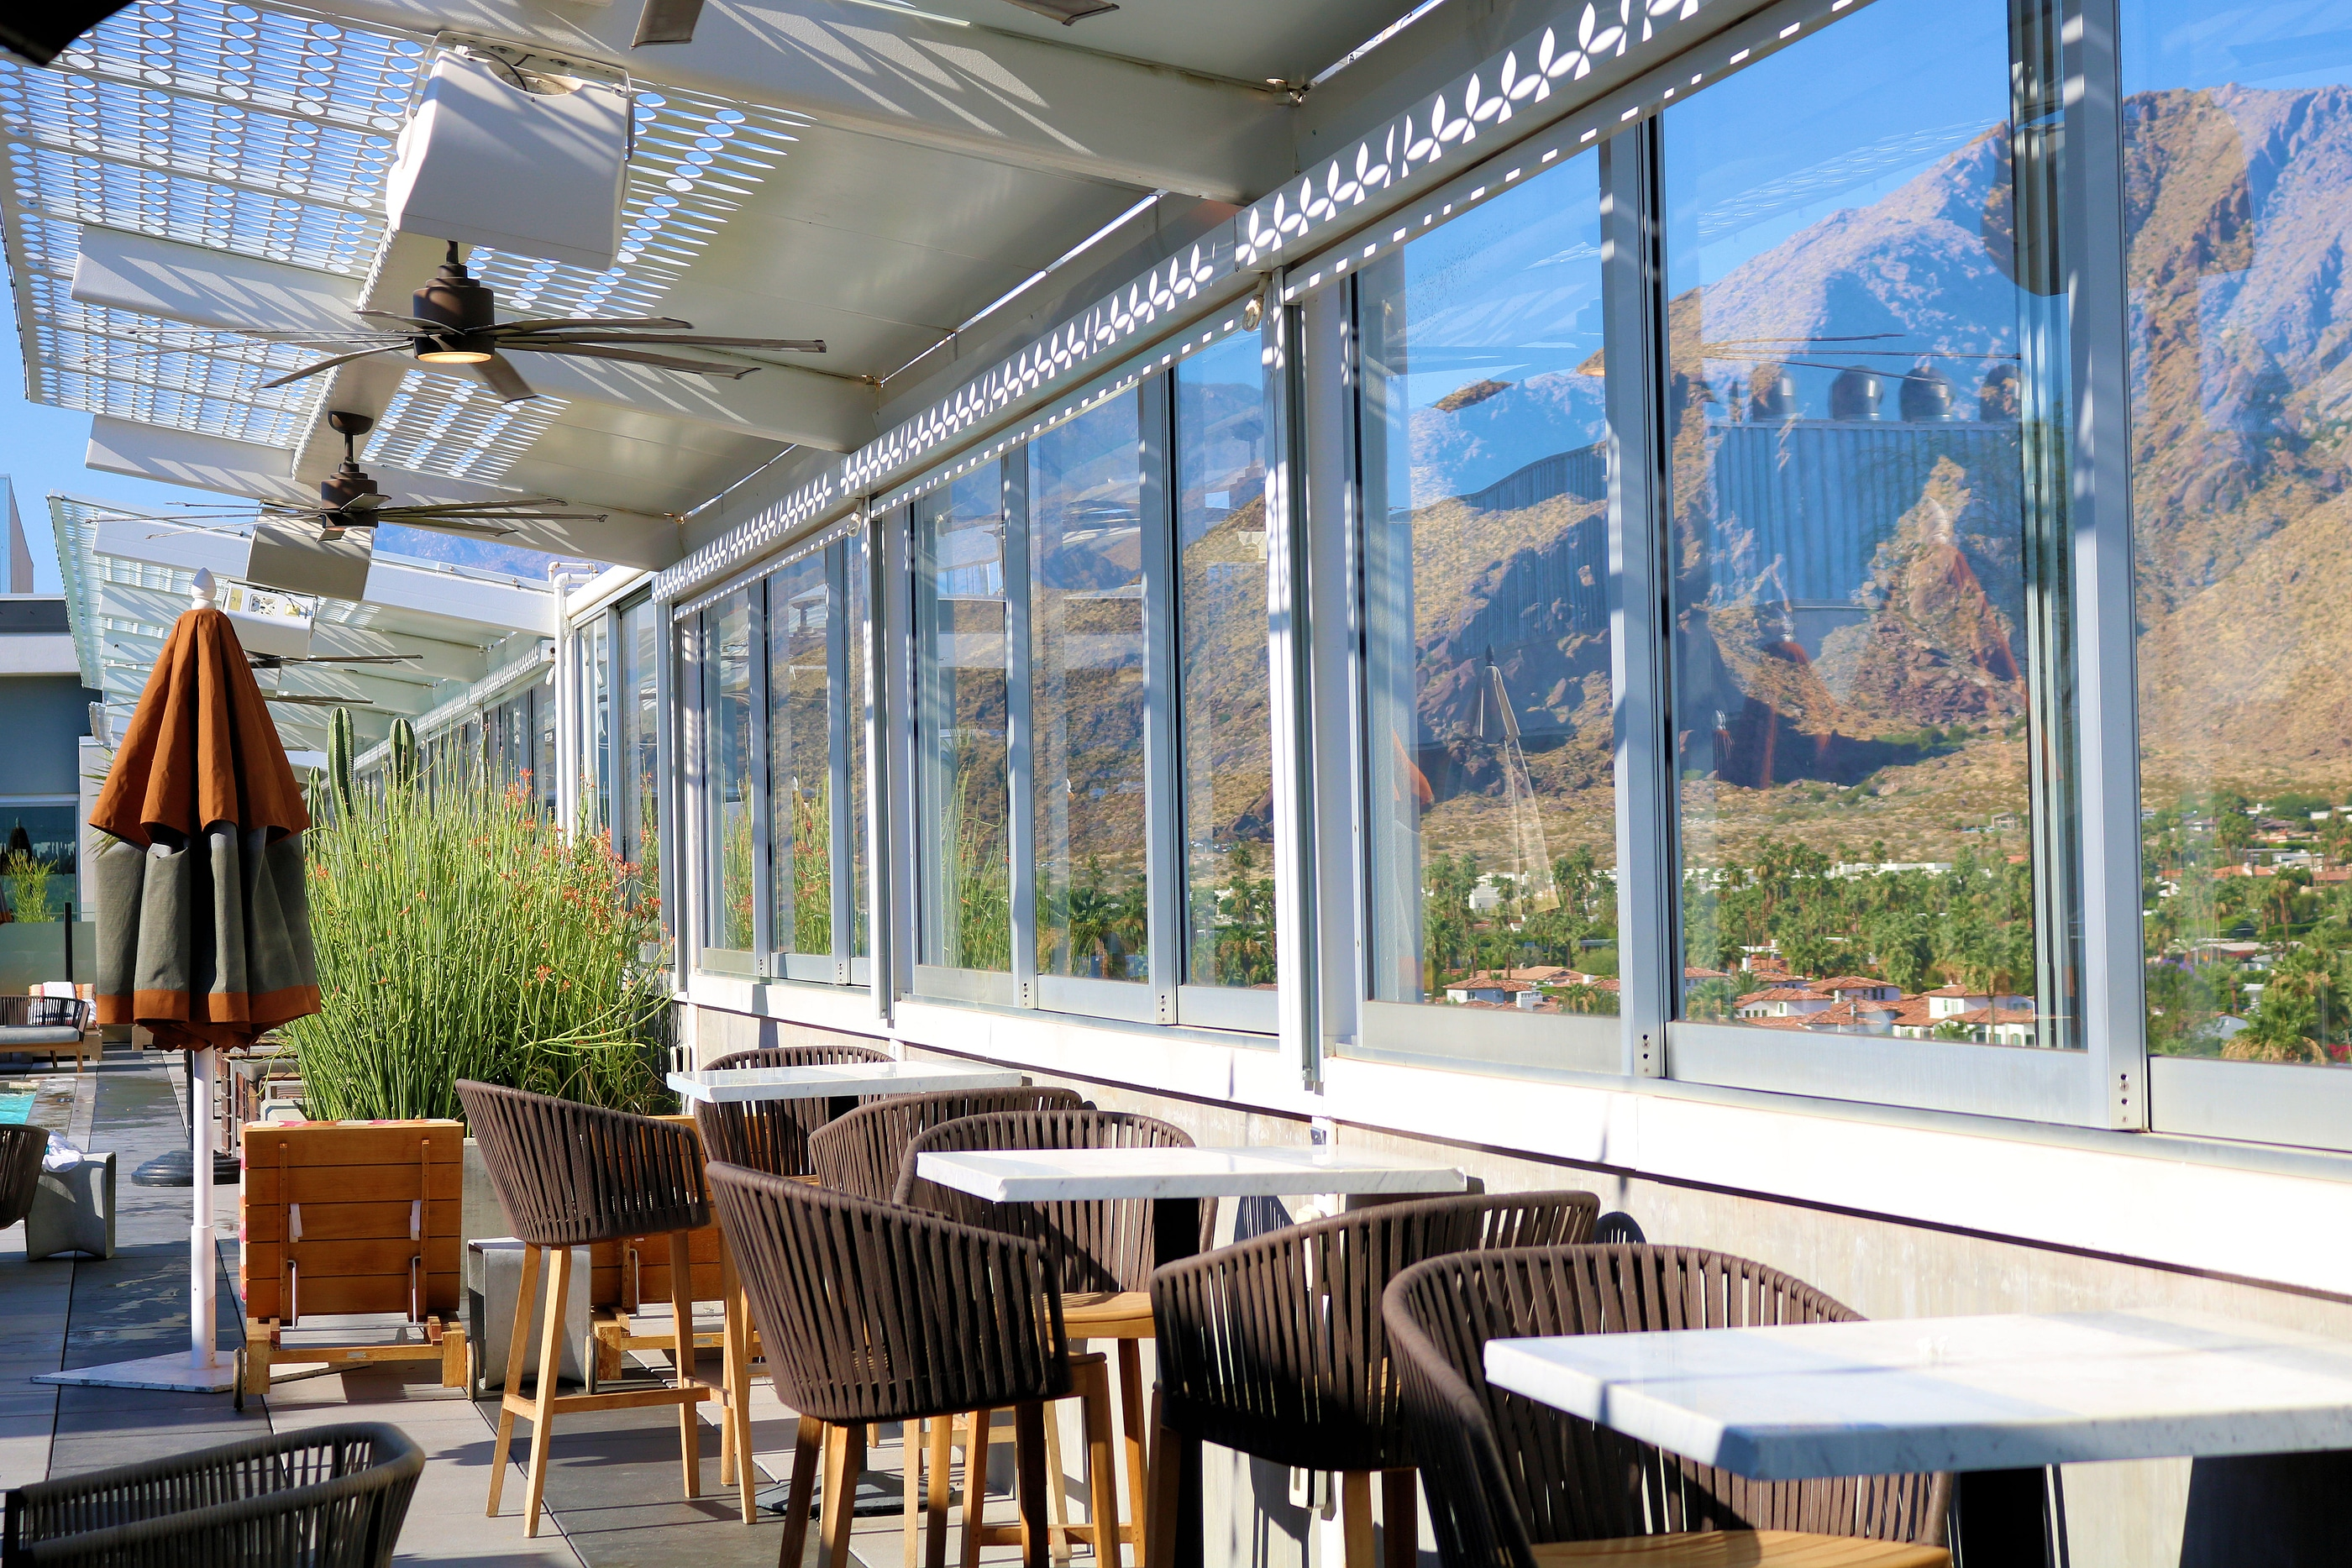 Restaurants in Palm Springs comprise a dining scene that's gathering national notice for its sophistication.